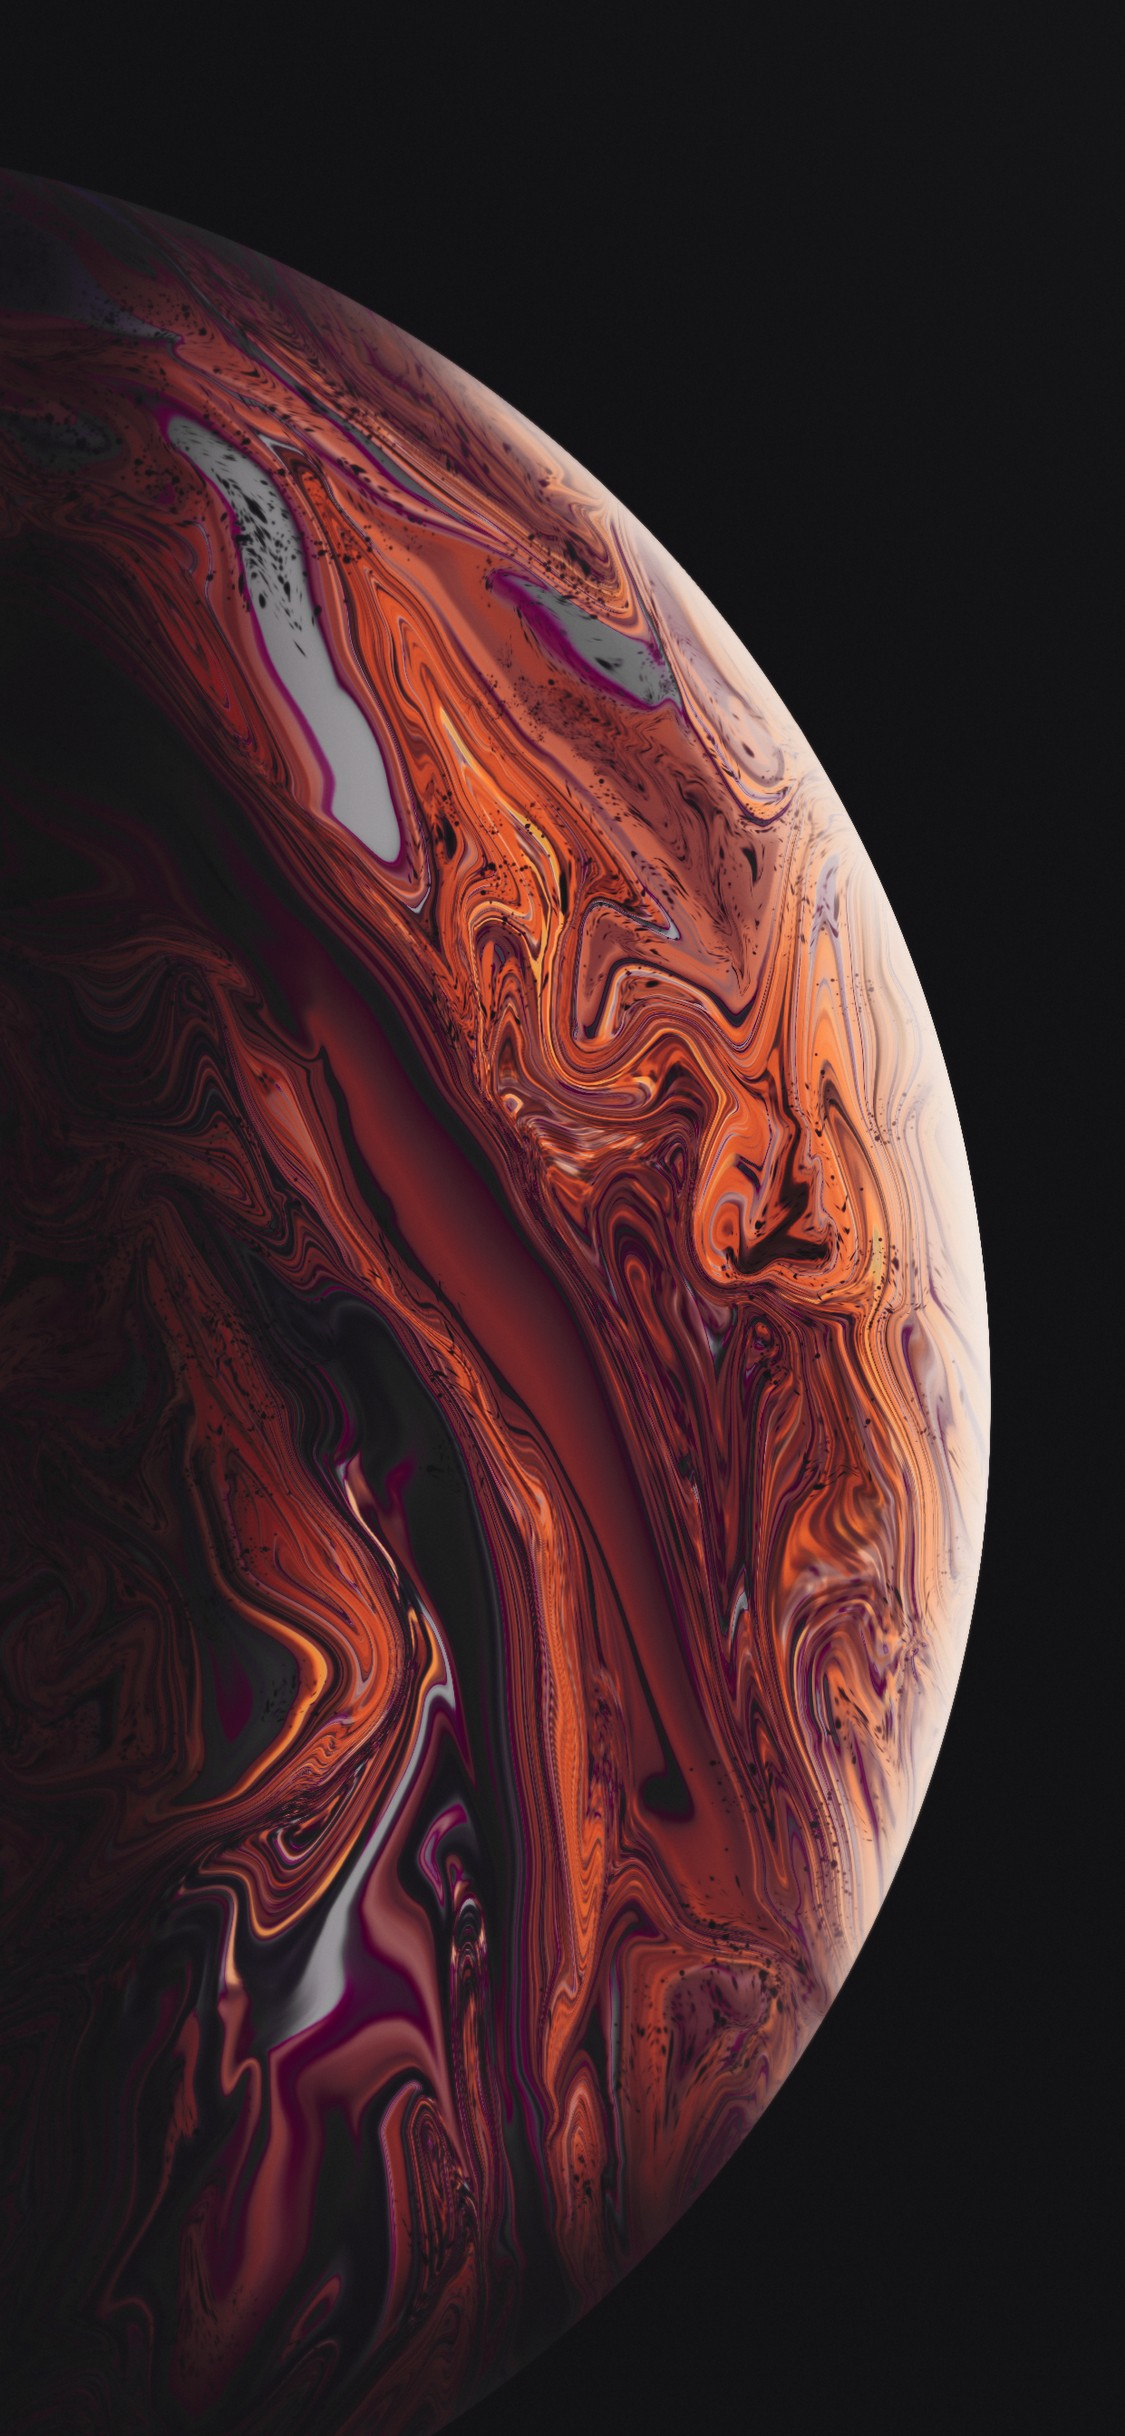 iPhone XS Wallpaper Size With high-resolution 1125X2436 pixel. You can set as wallpaper for Apple iPhone X, XS Max, XR, 8, 7, 6, SE, iPad. Enjoy and share your favorite HD wallpapers and background images